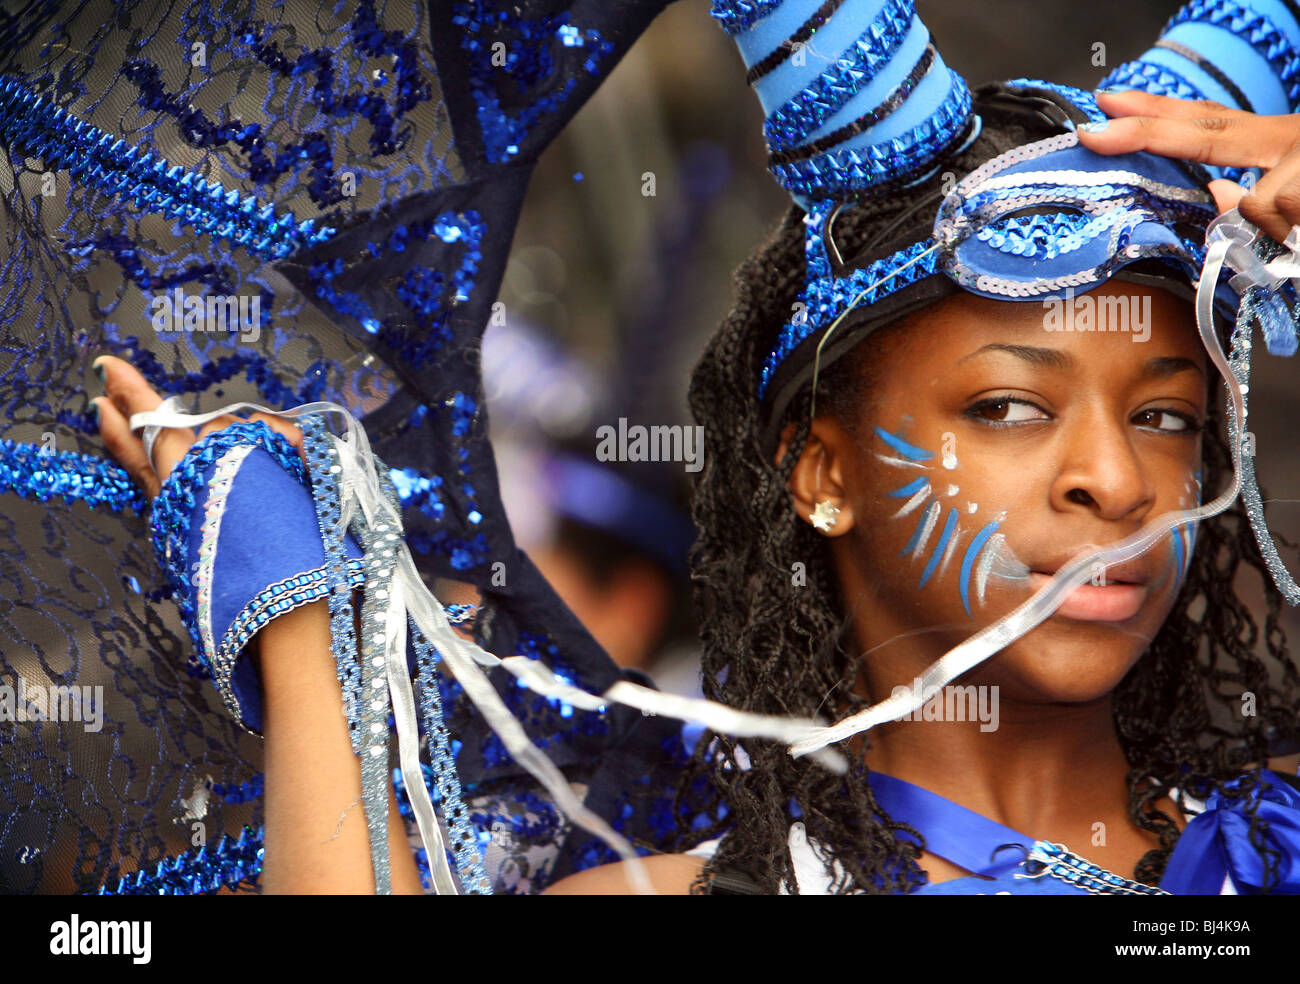 Colourful displays on the final day of the Notting Hill Carnival in London, August 25th, 2008. Credit: Susannah - Stock Image